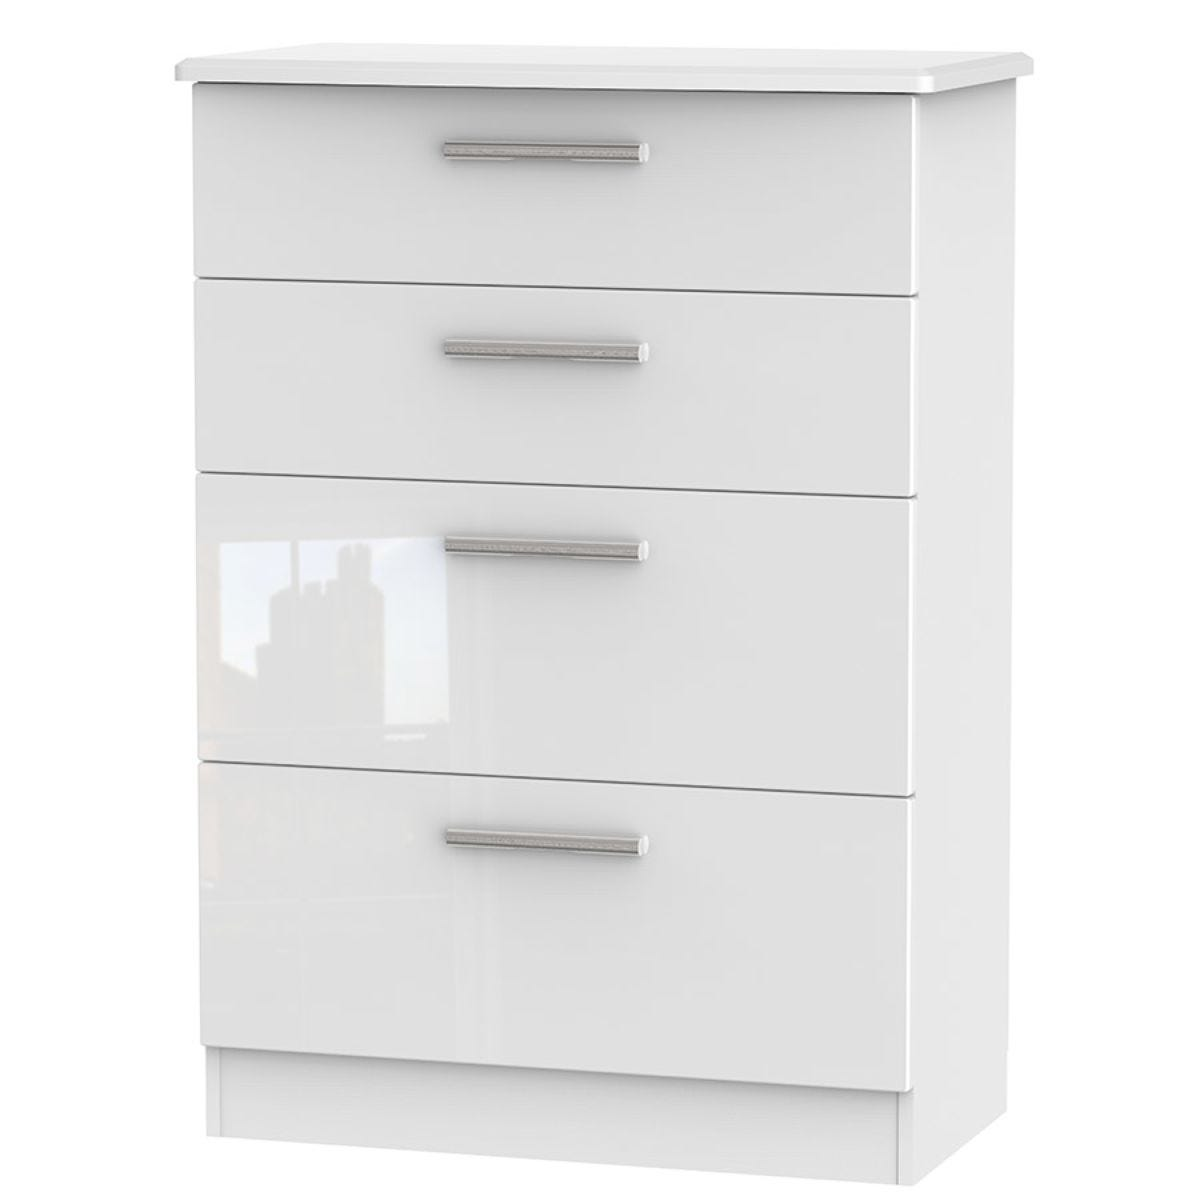 Fourisse 4-Drawer Deep Chest of Drawers - White